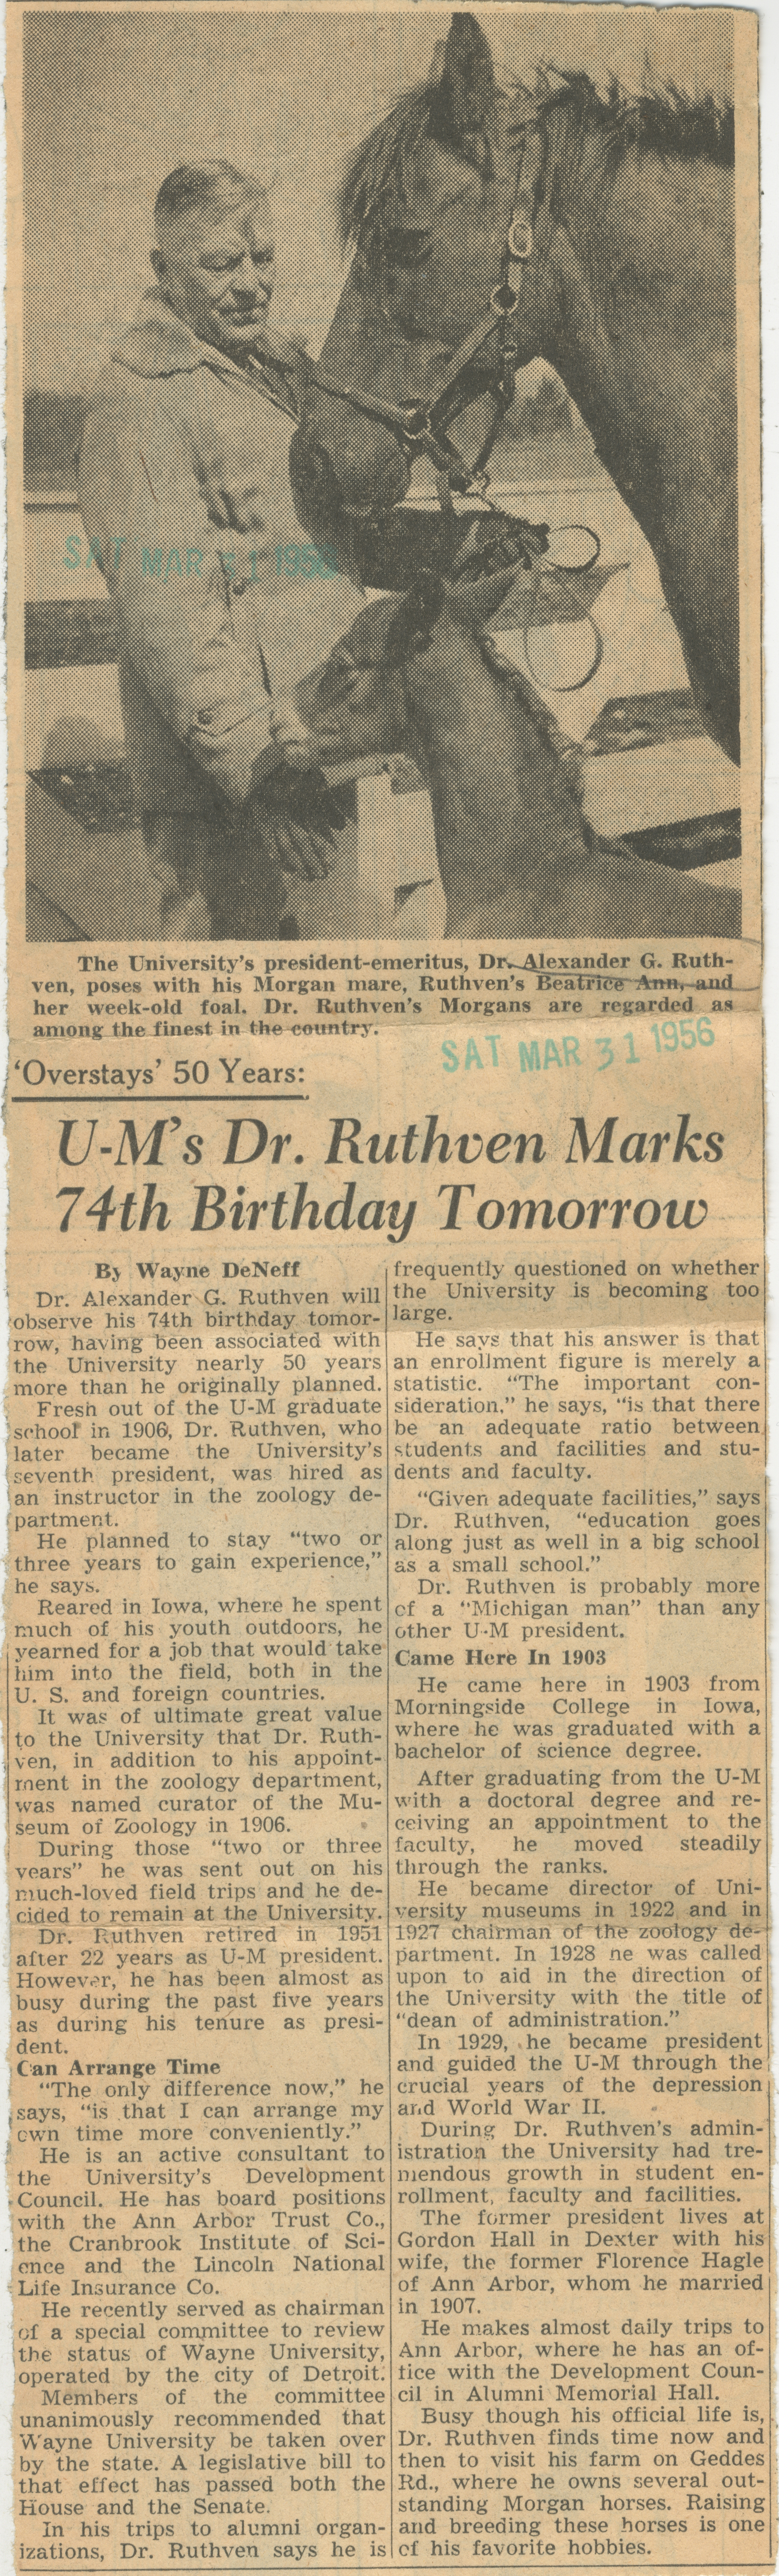 U-M's Dr. Ruthven Marks 74th Birthday Tomorrow image